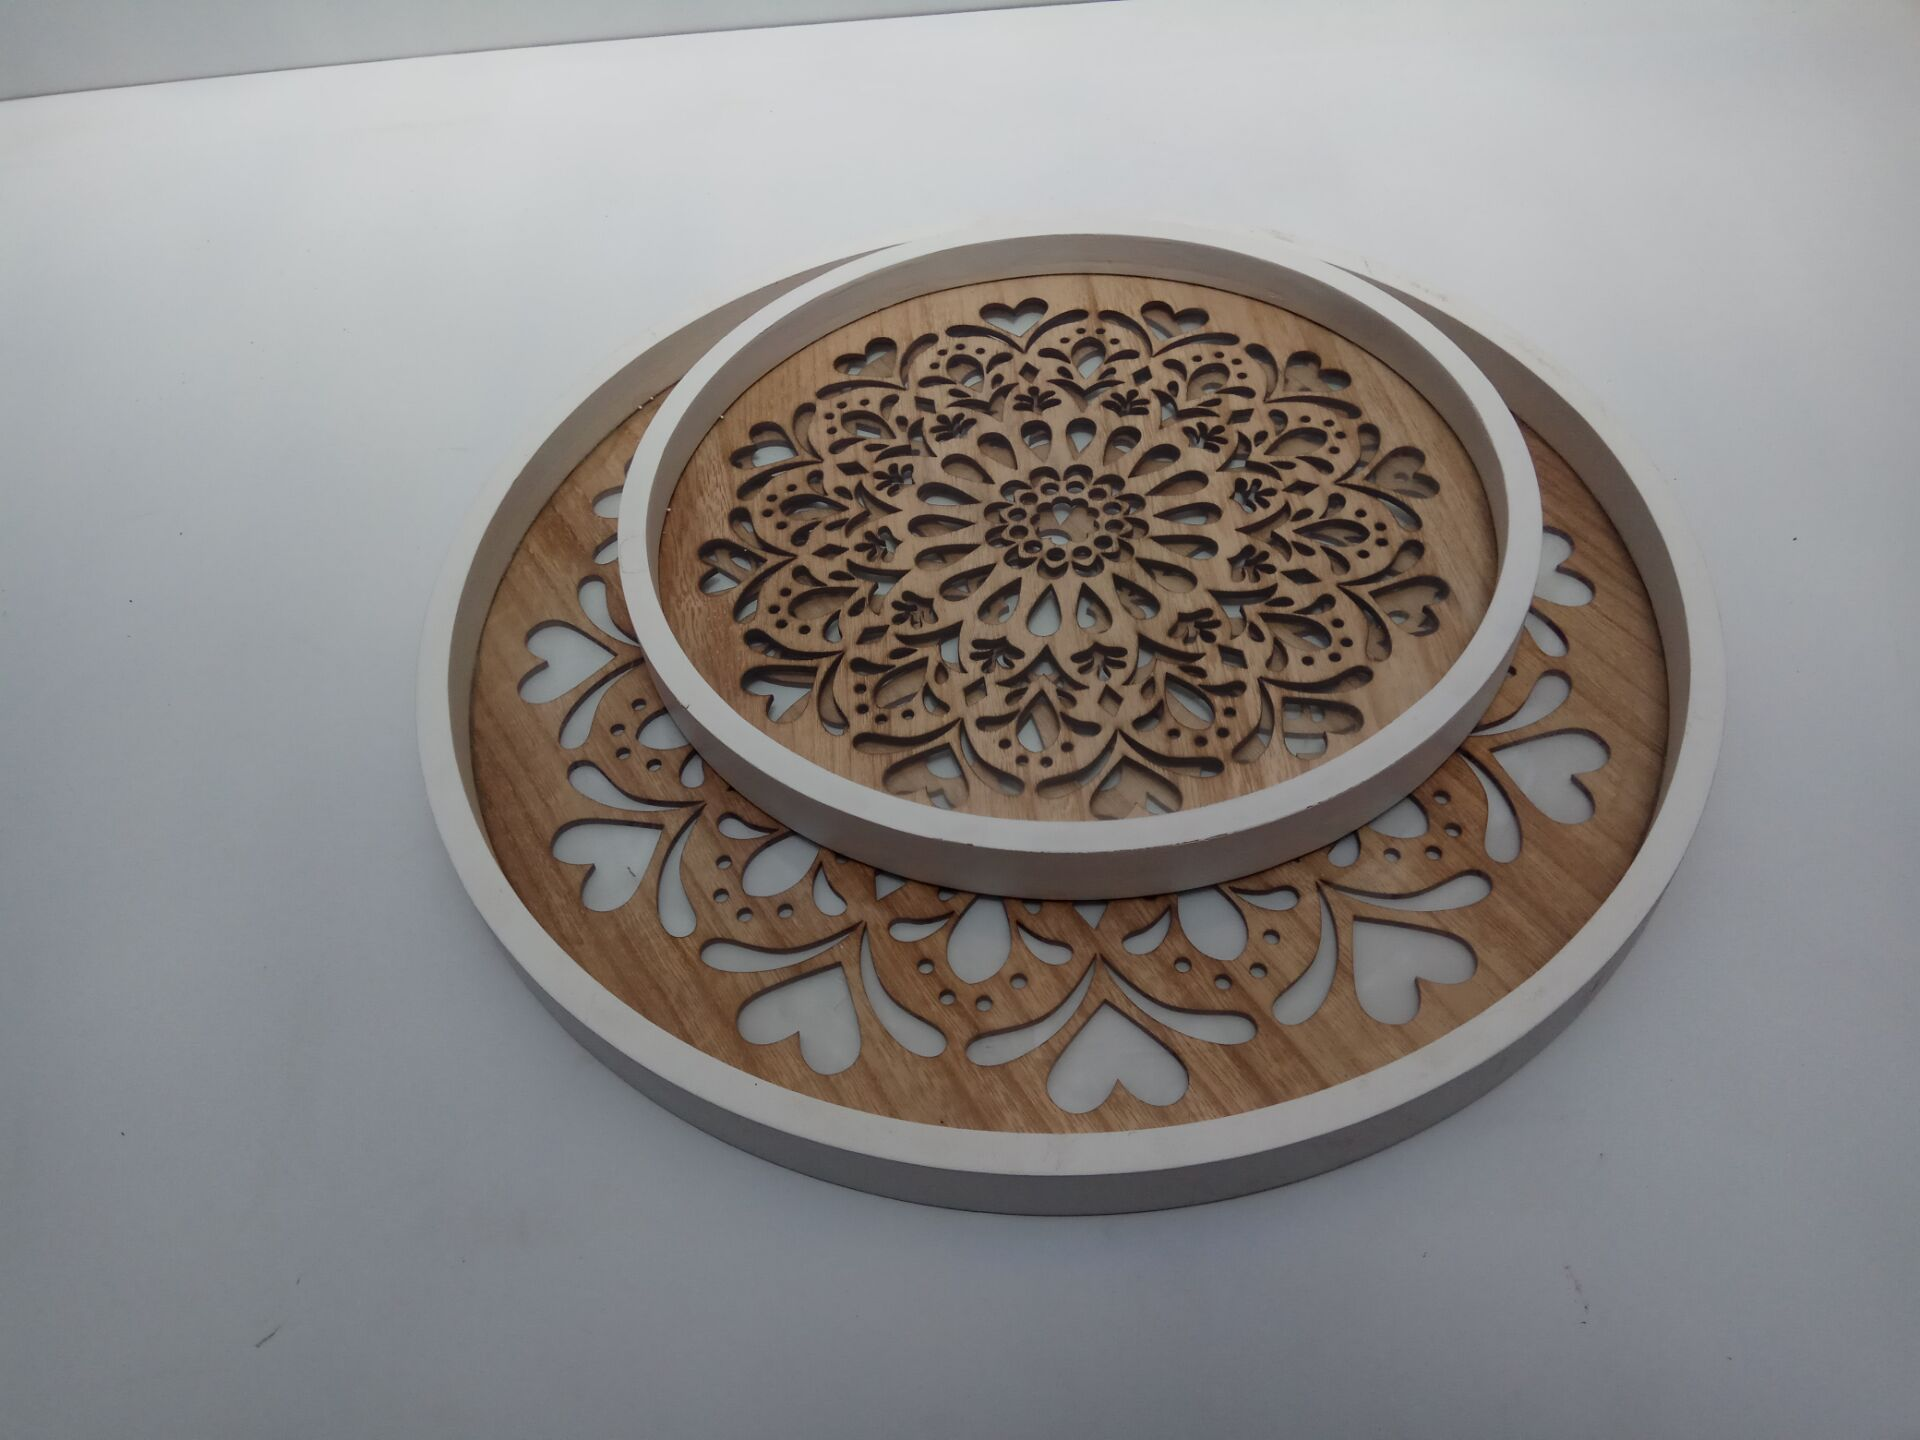 2017 new design wooen plate